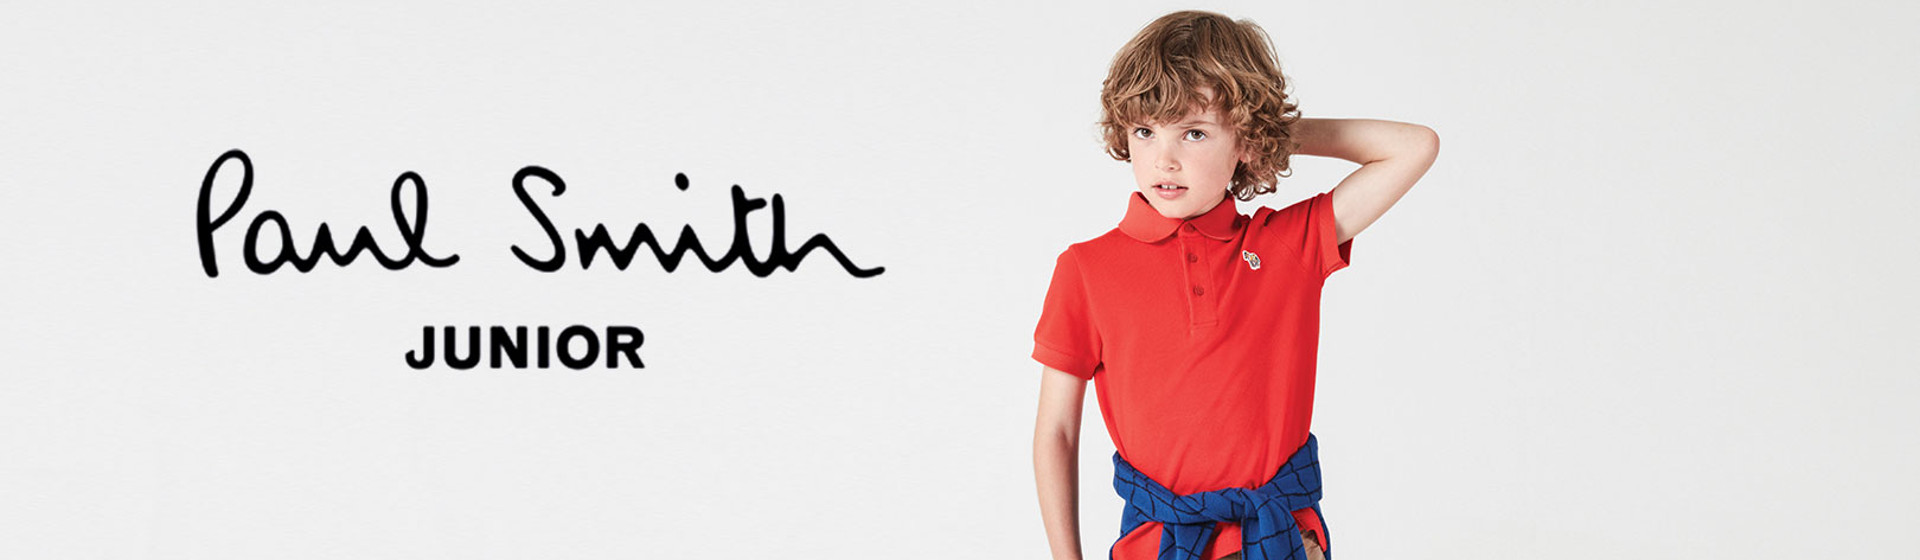 Brand Spotlight: Paul Smith Junior